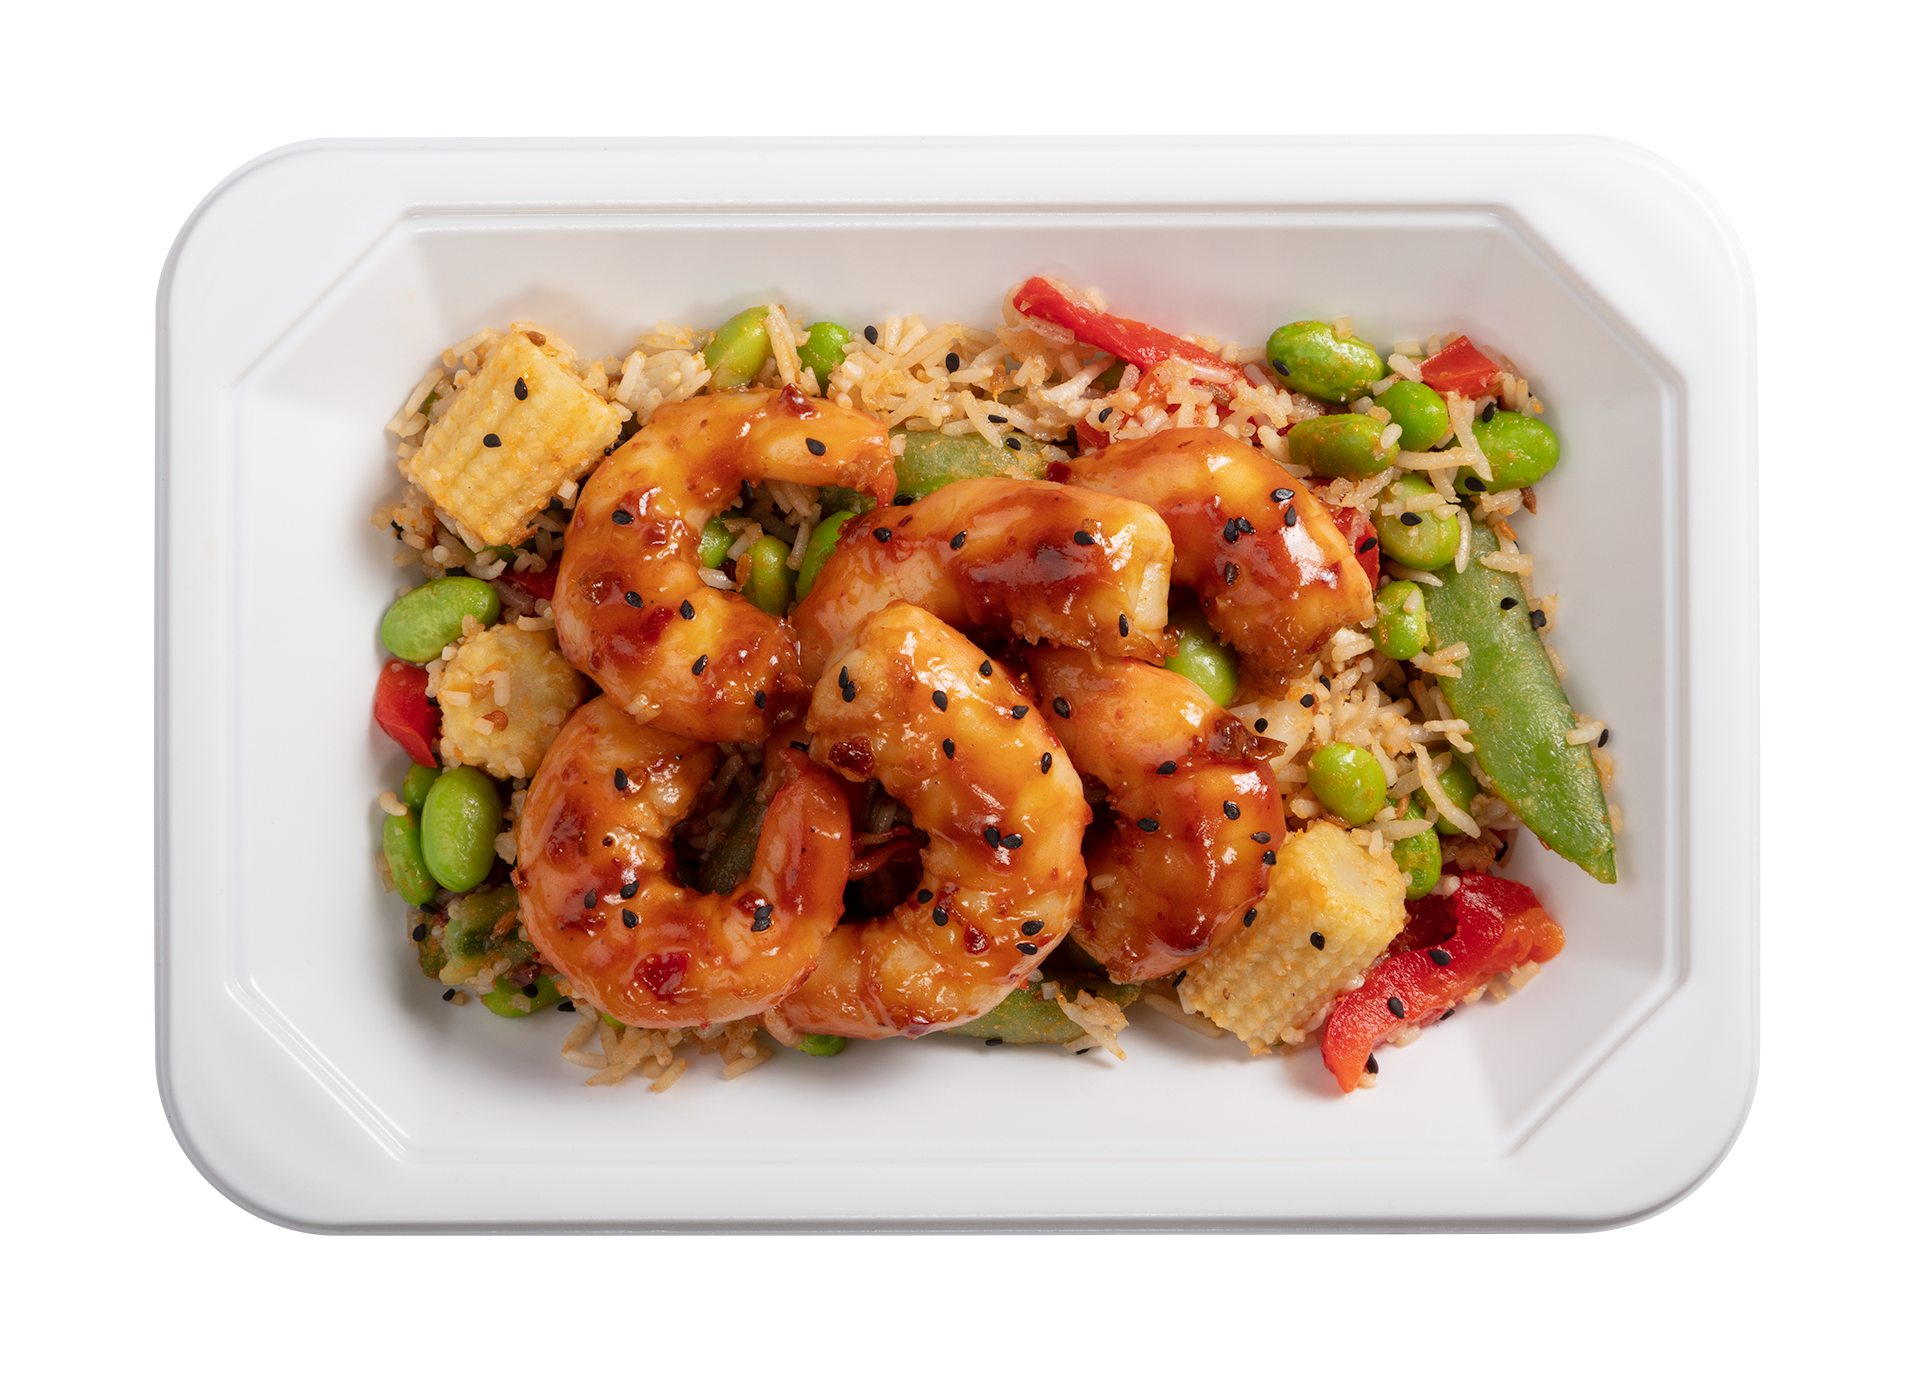 Stir Fried Shrimp microwavable meal in its packaging tray.